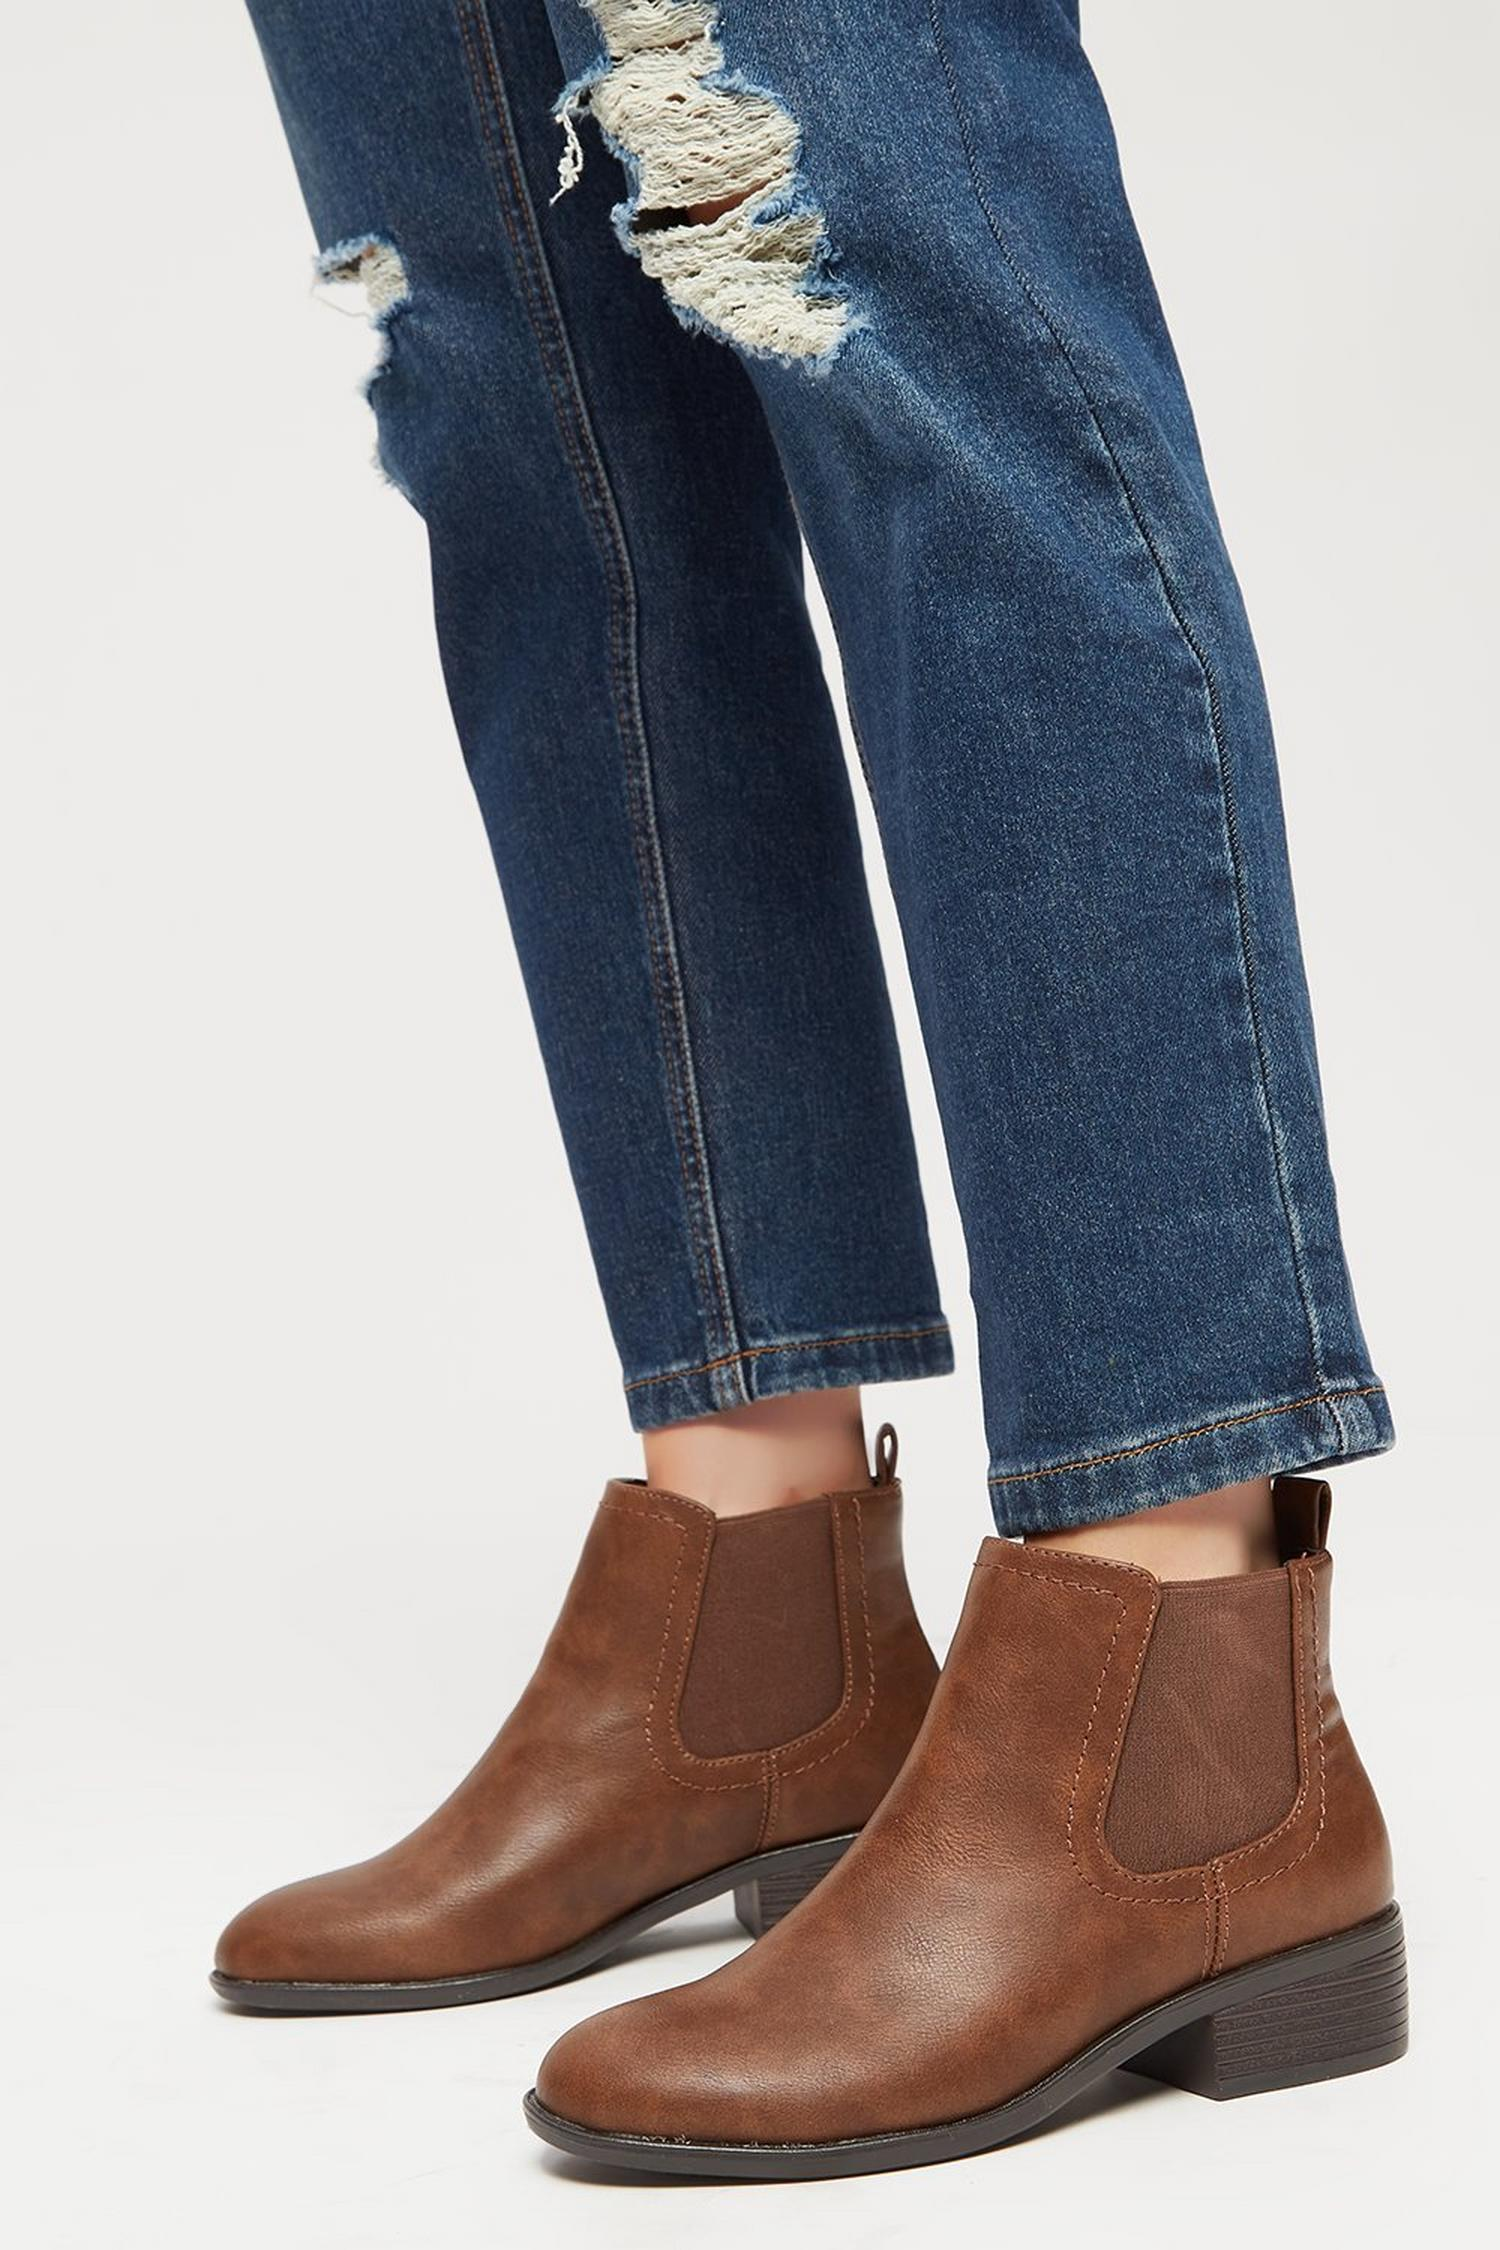 109 Tan PU Maple Chelsea Boots image number 4